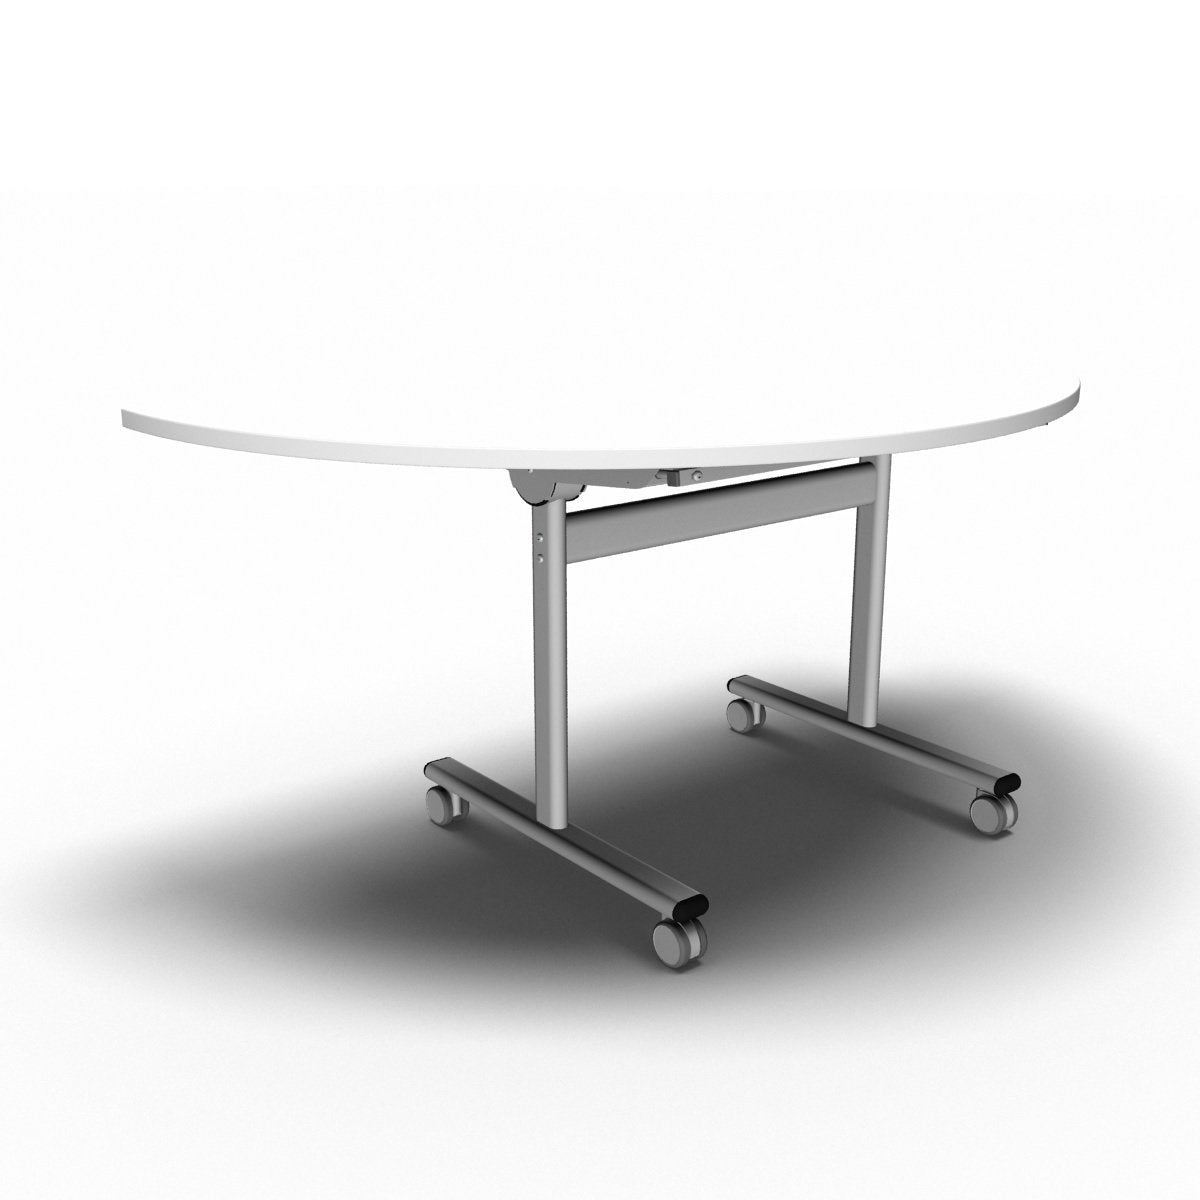 Table 1600 x 800 x 720mm / Semi Circular / White Synergy Flip Top Tables